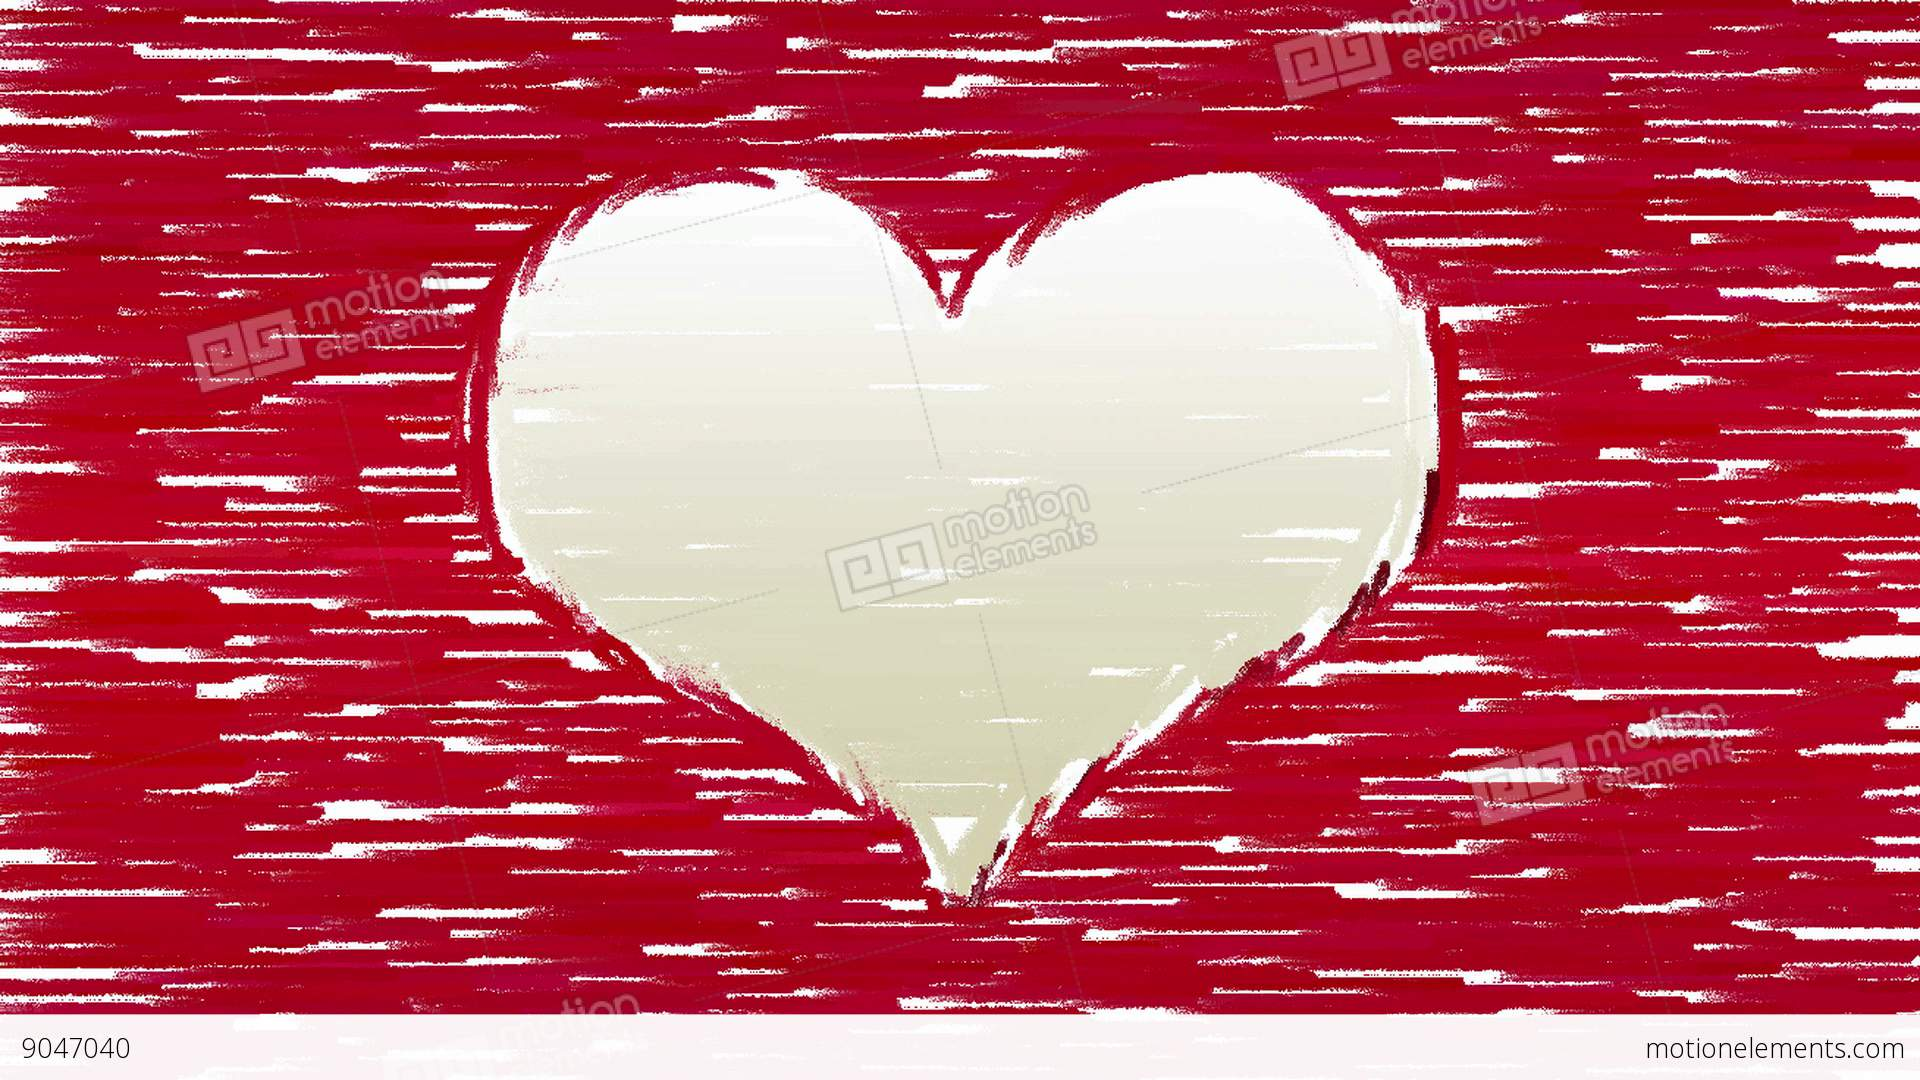 Paint brush strokes forms heart symbol stock animation 9047040 paint brush strokes forms heart symbol stock video footage biocorpaavc Image collections